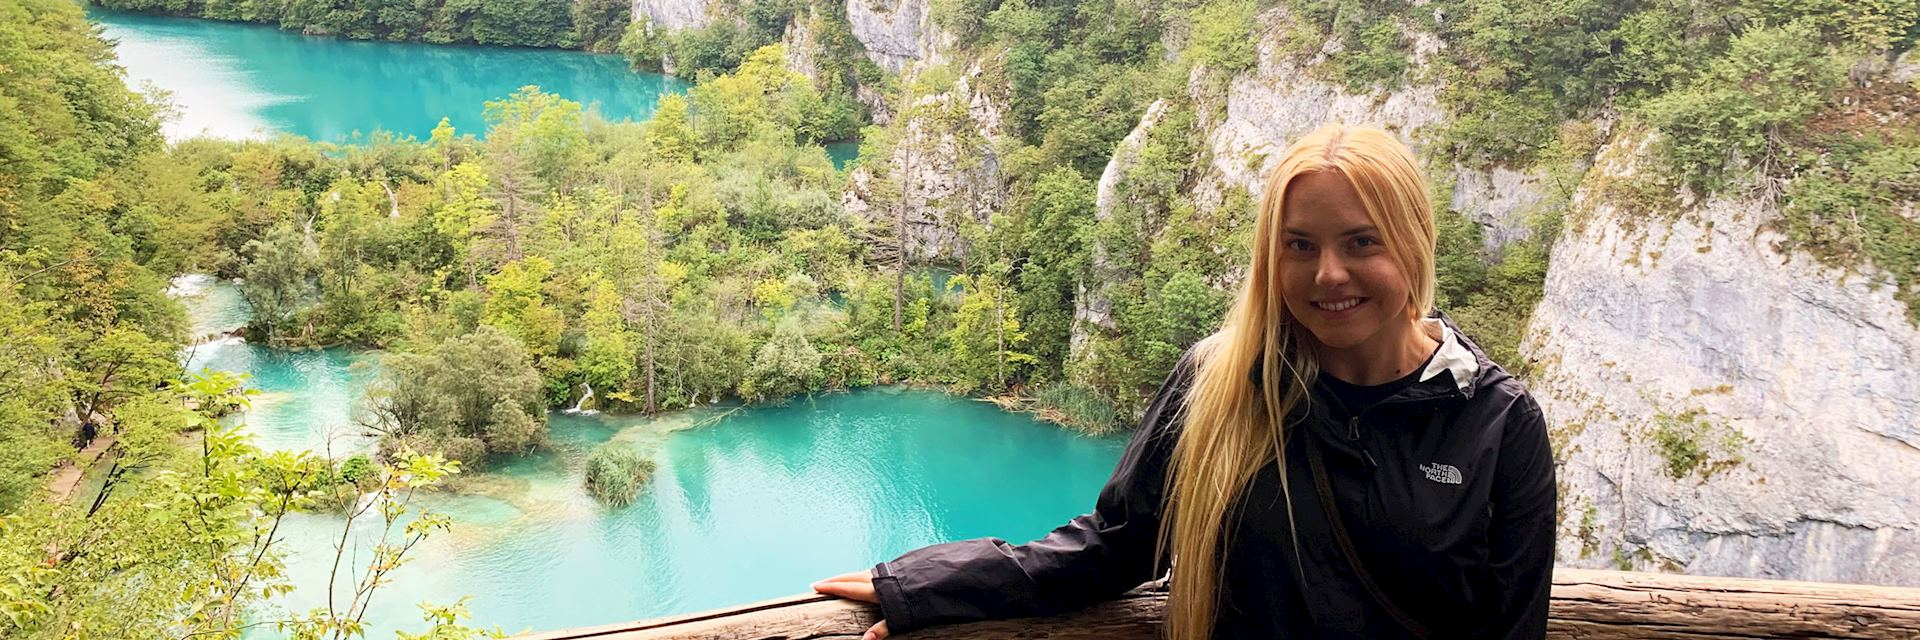 Stefany by the Plitvice Lakes, Croatia